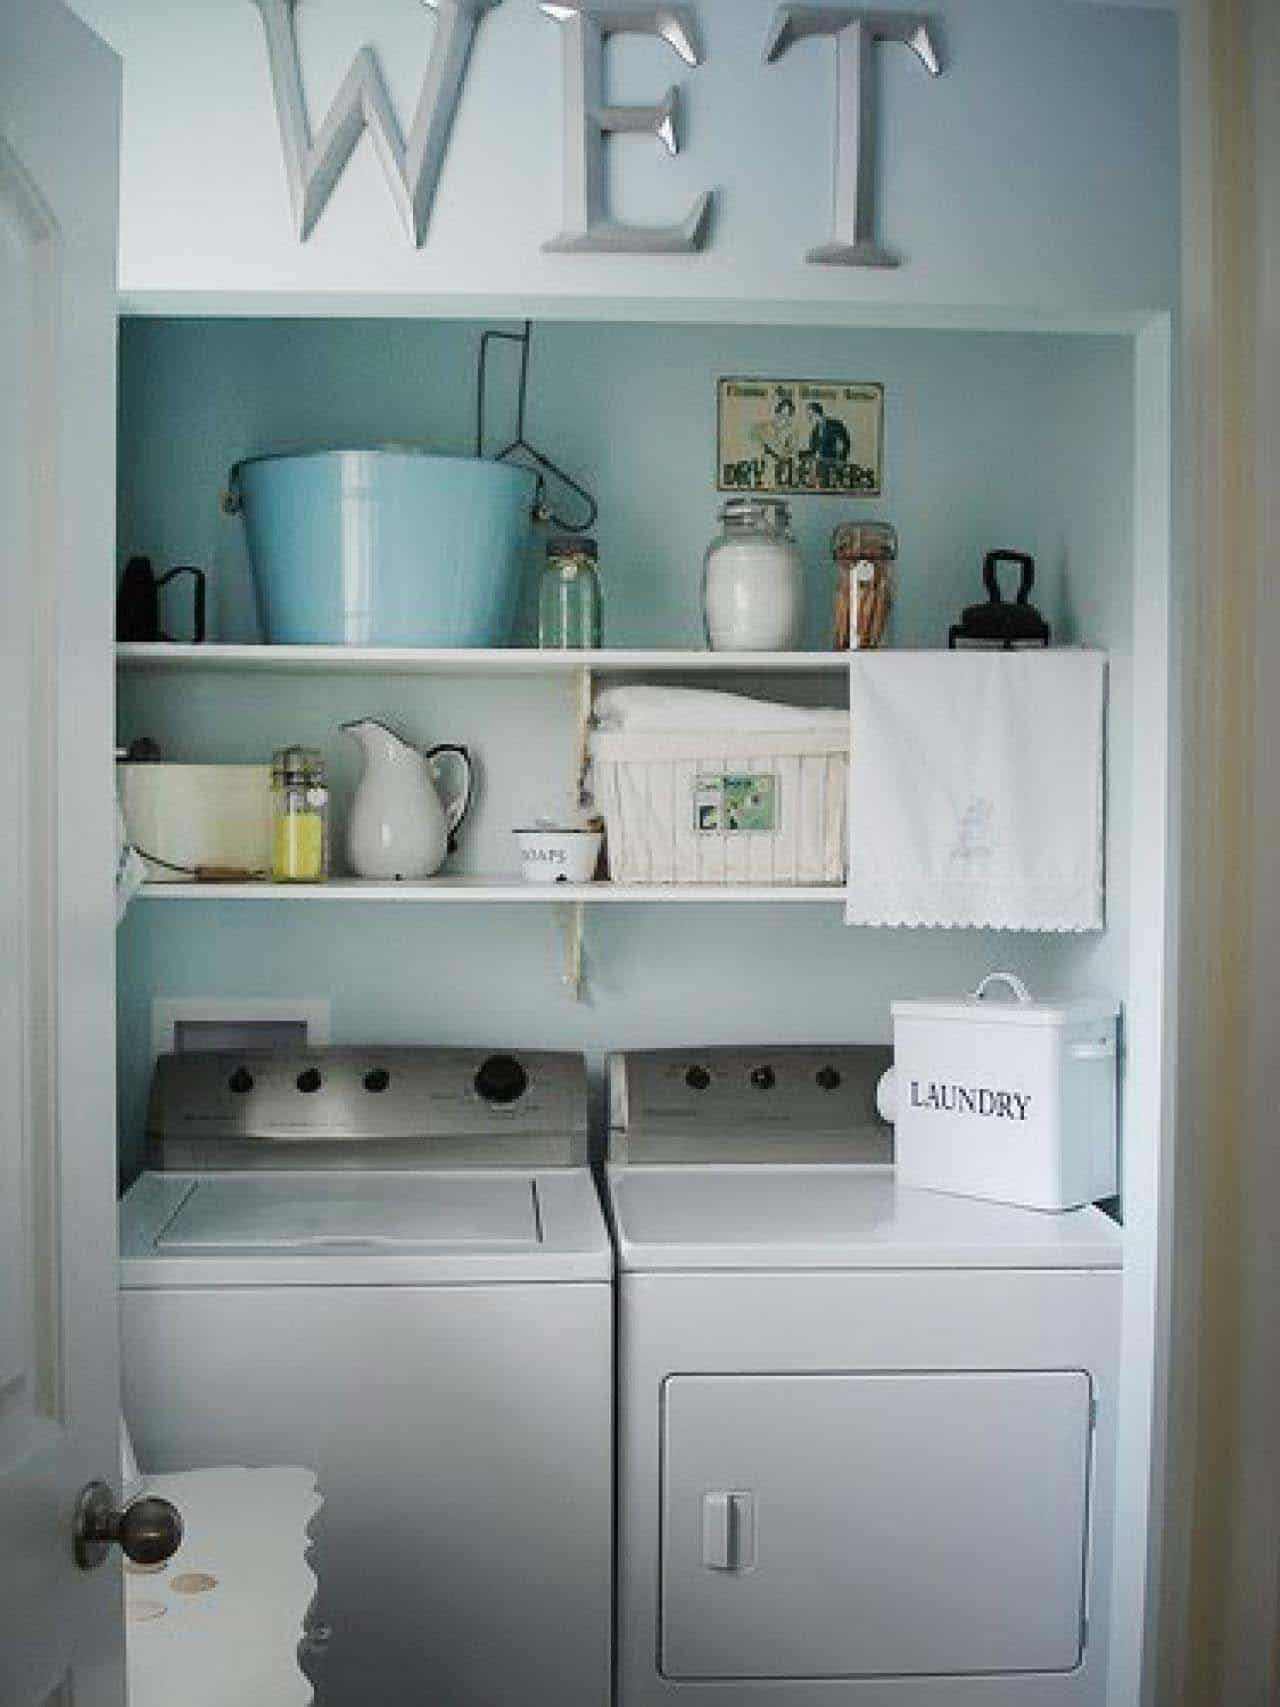 35 Clever ways to create functional and stylish small ... on Laundry Room Shelves Ideas  id=39216